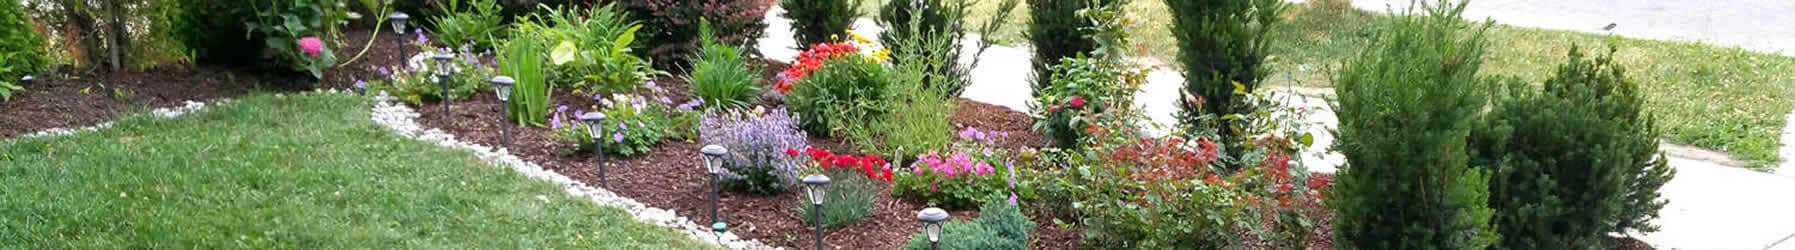 Whitby Landscaping U0026 Gardening   Call/Text: 905 926 9111 ...